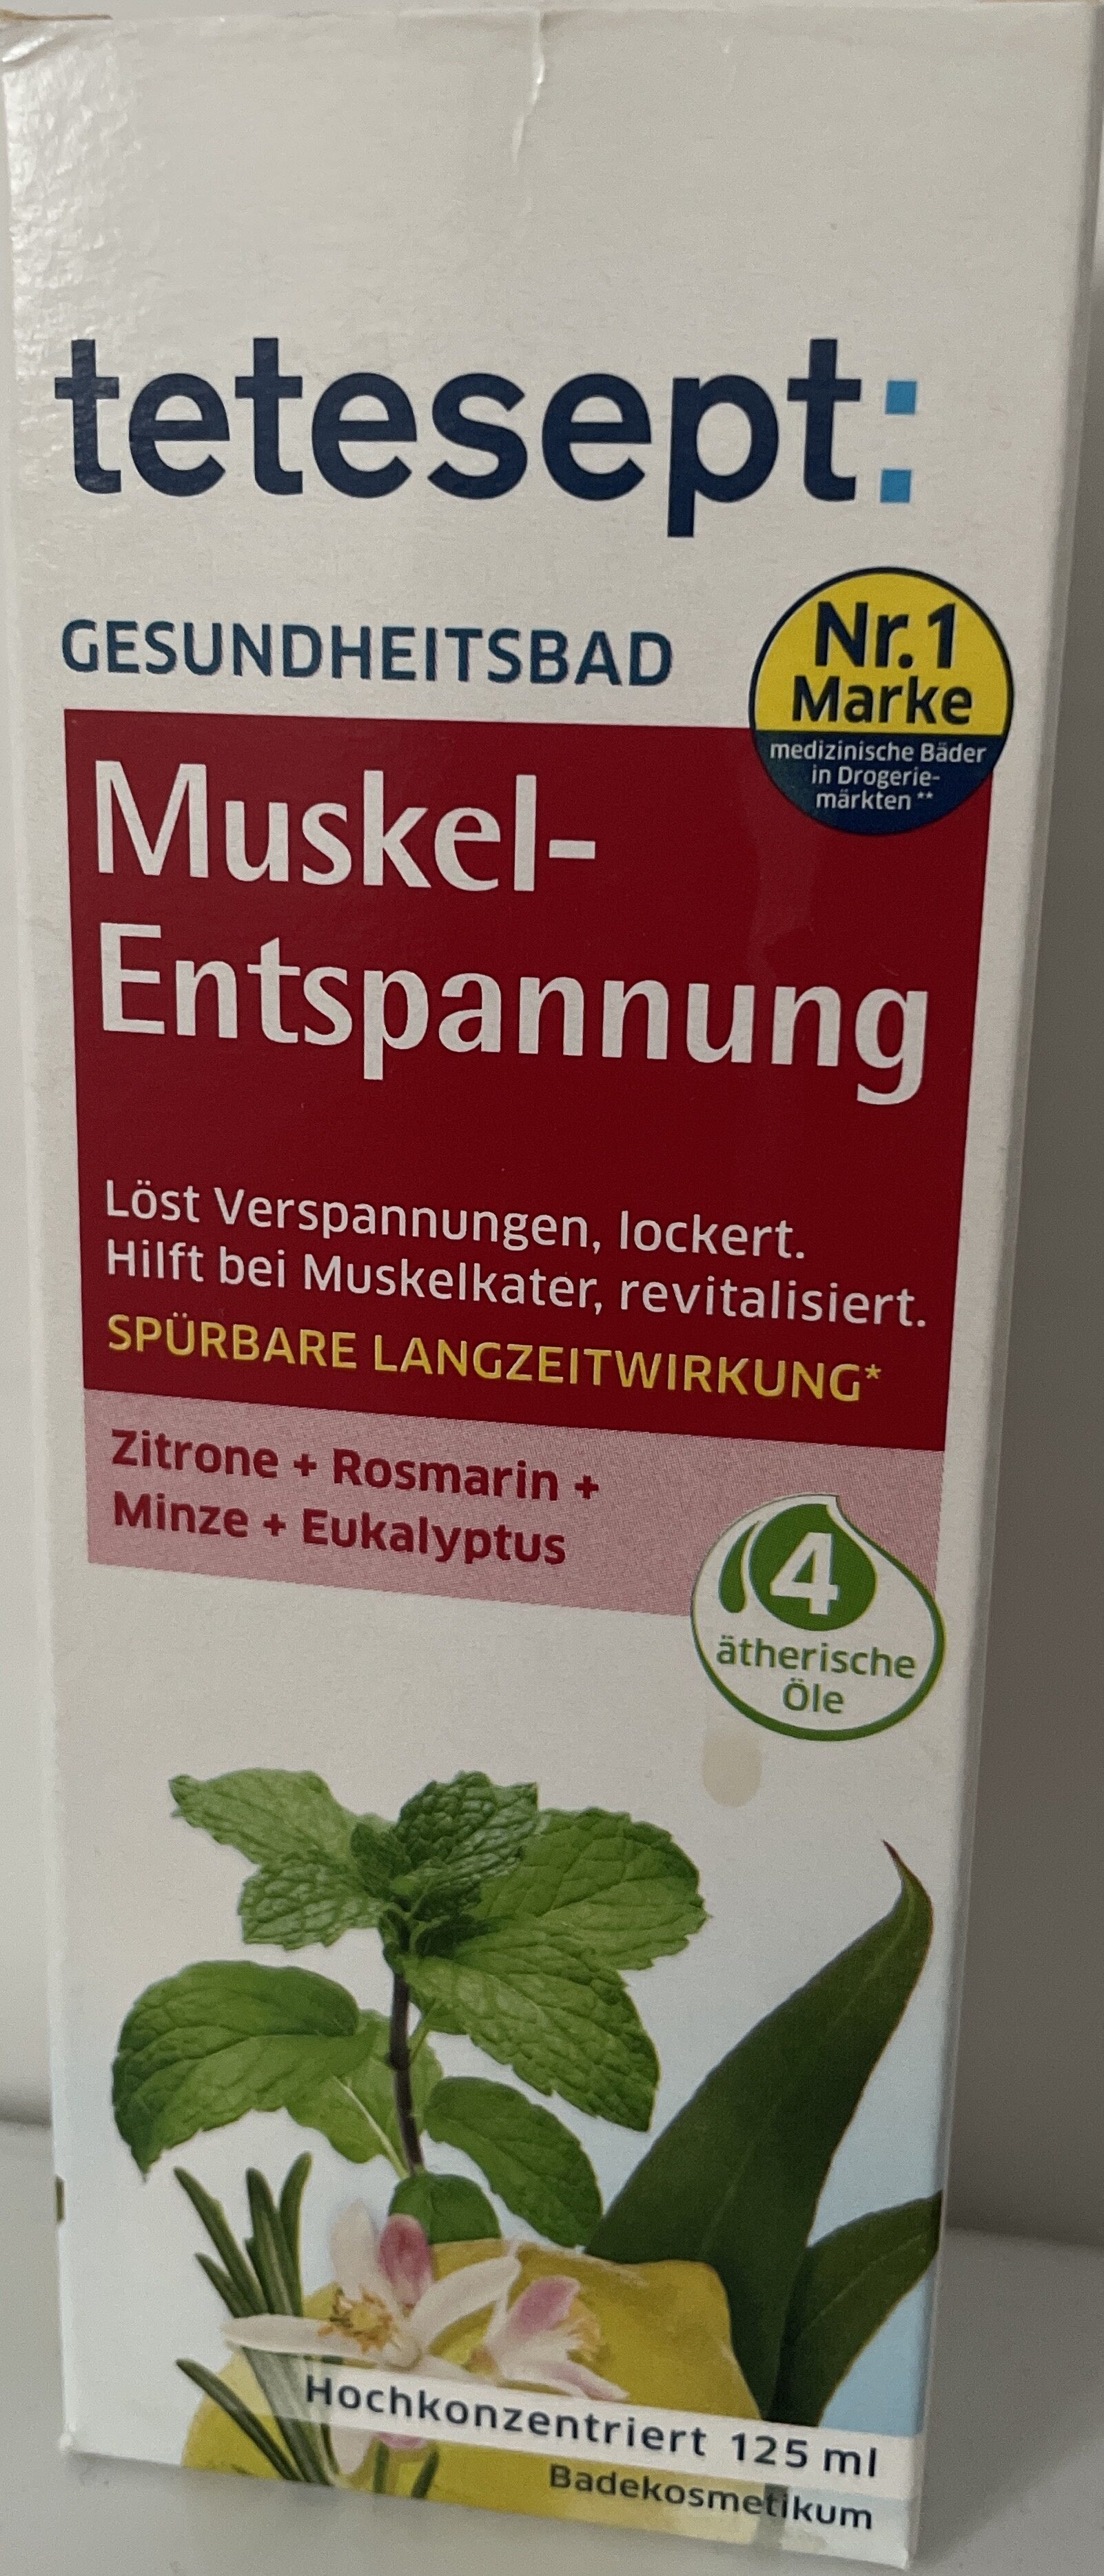 tetesept Muskel-Entspannung - Product - de